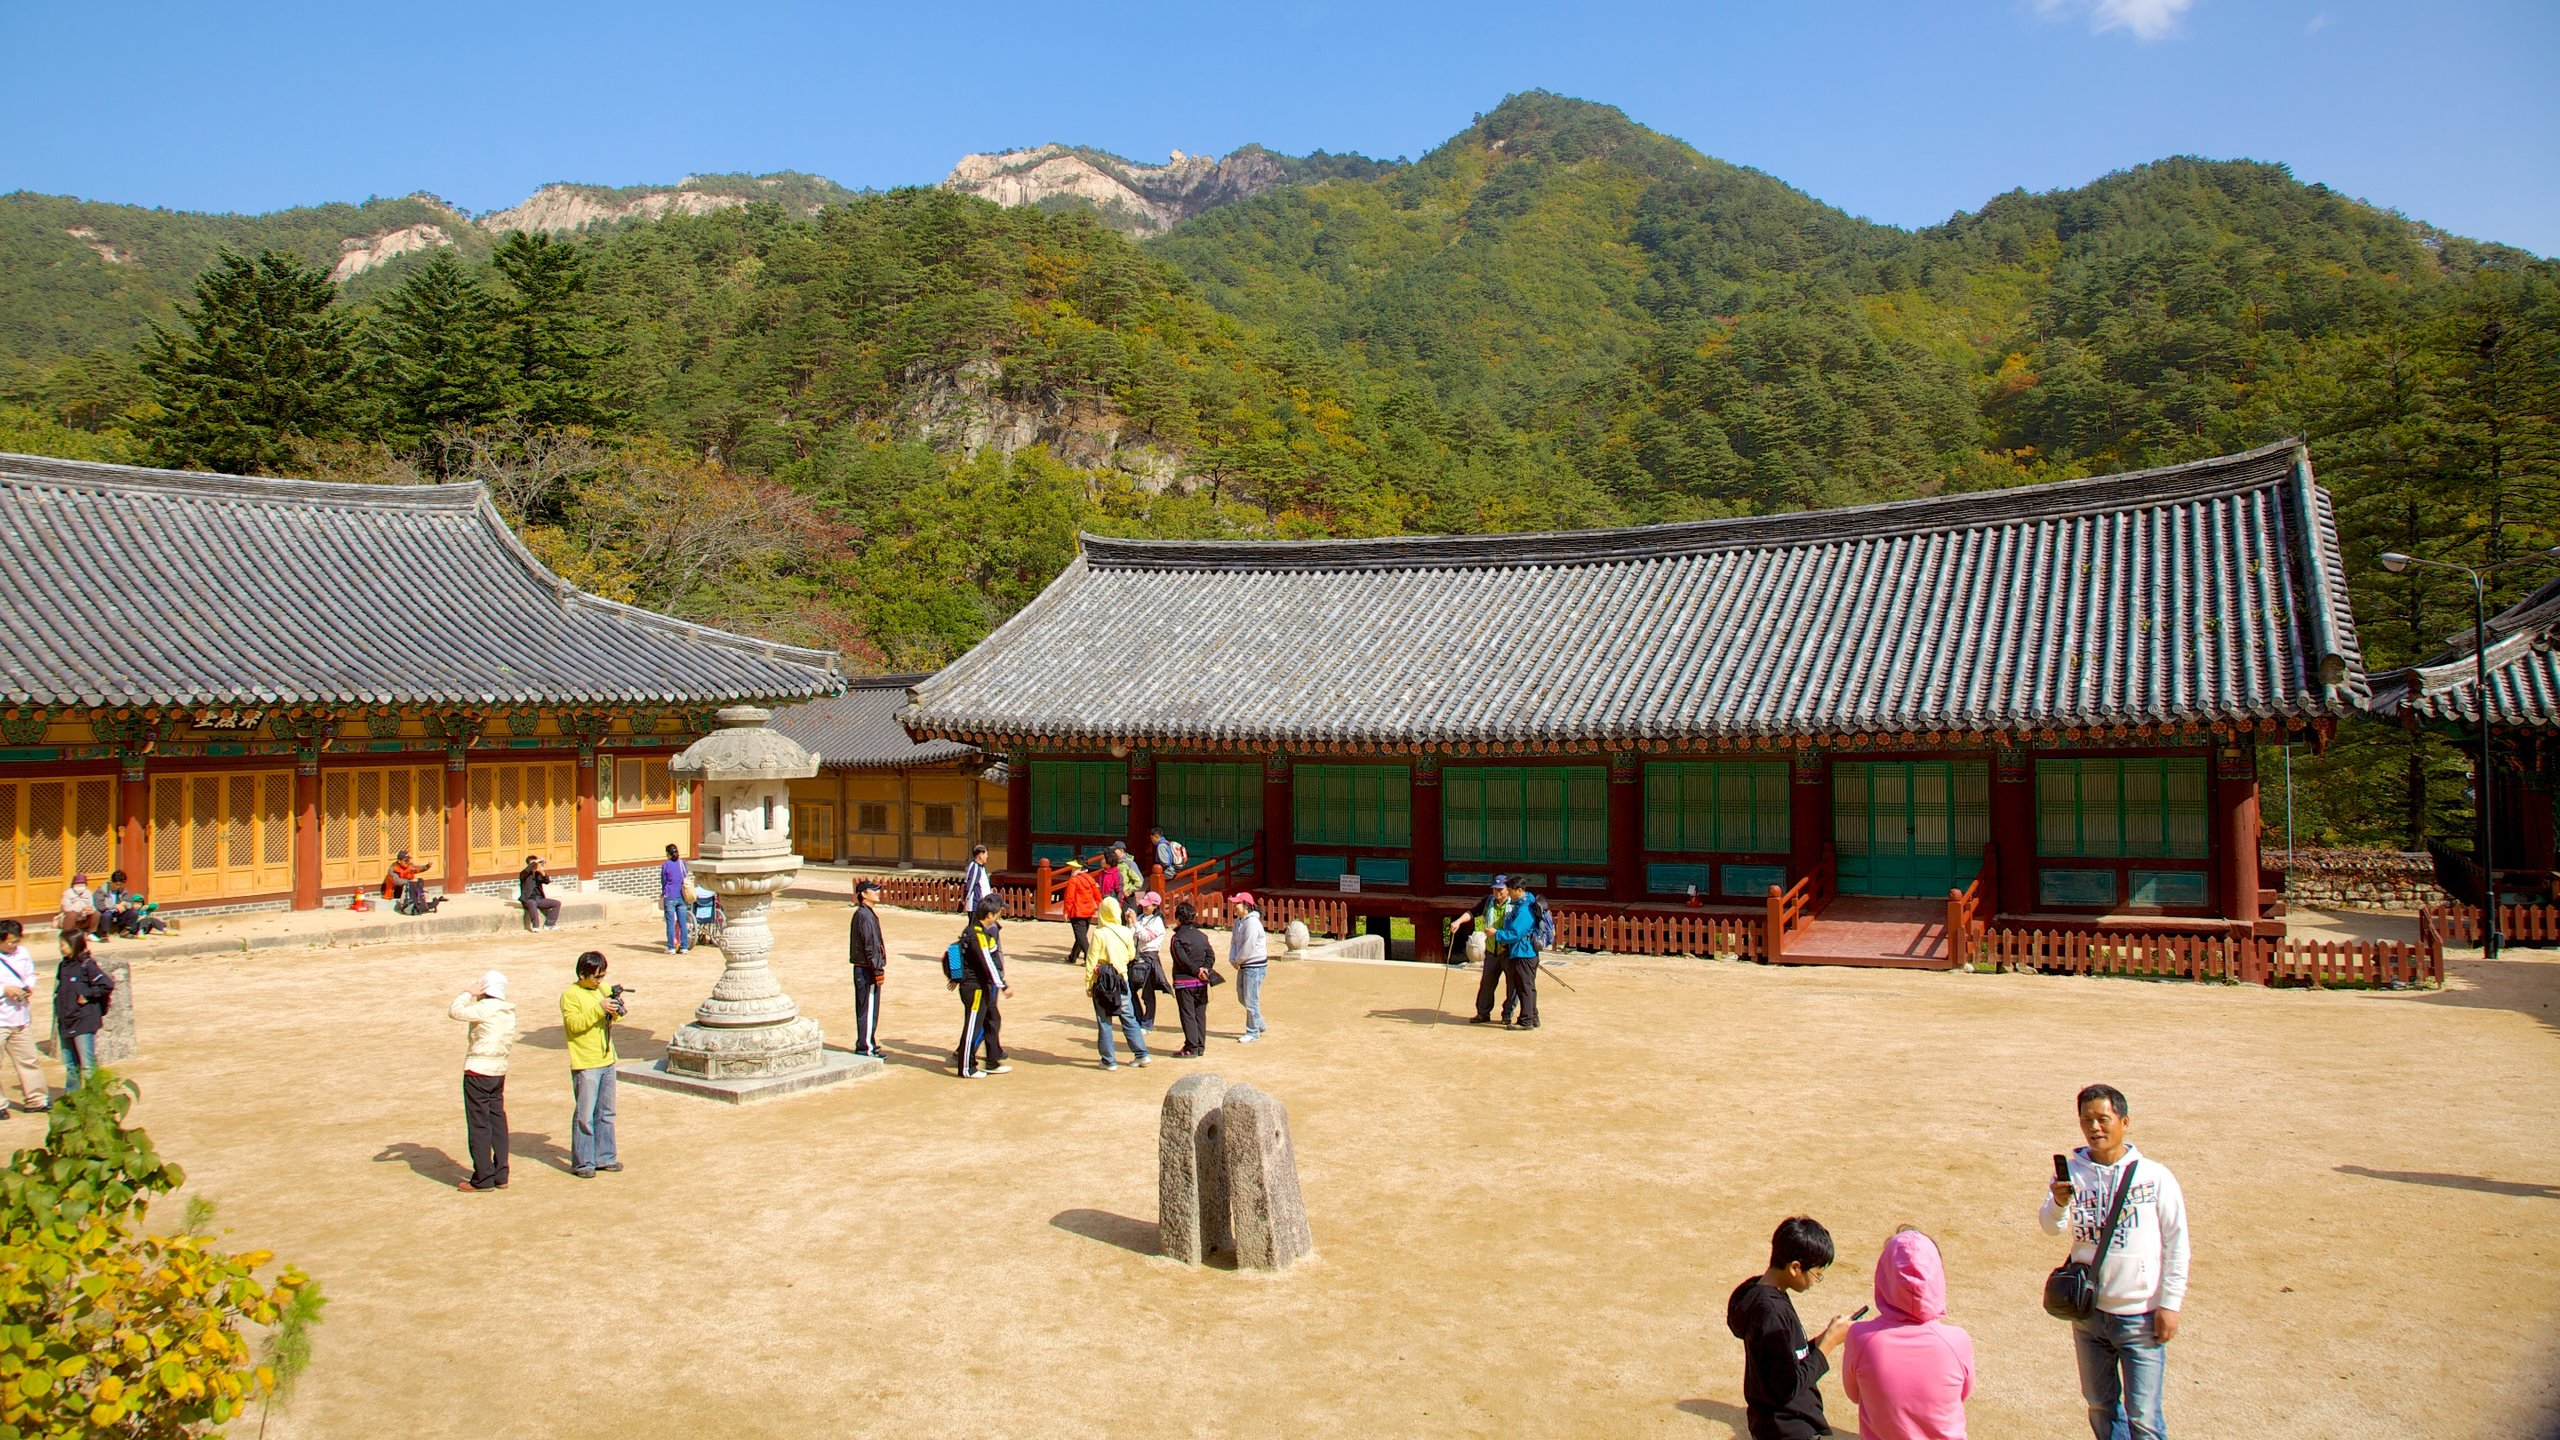 Amid the majestic mountains of Seoraksan National Park sits an ancient Zen Buddhist temple and a monument to a peaceful unification for Korea.